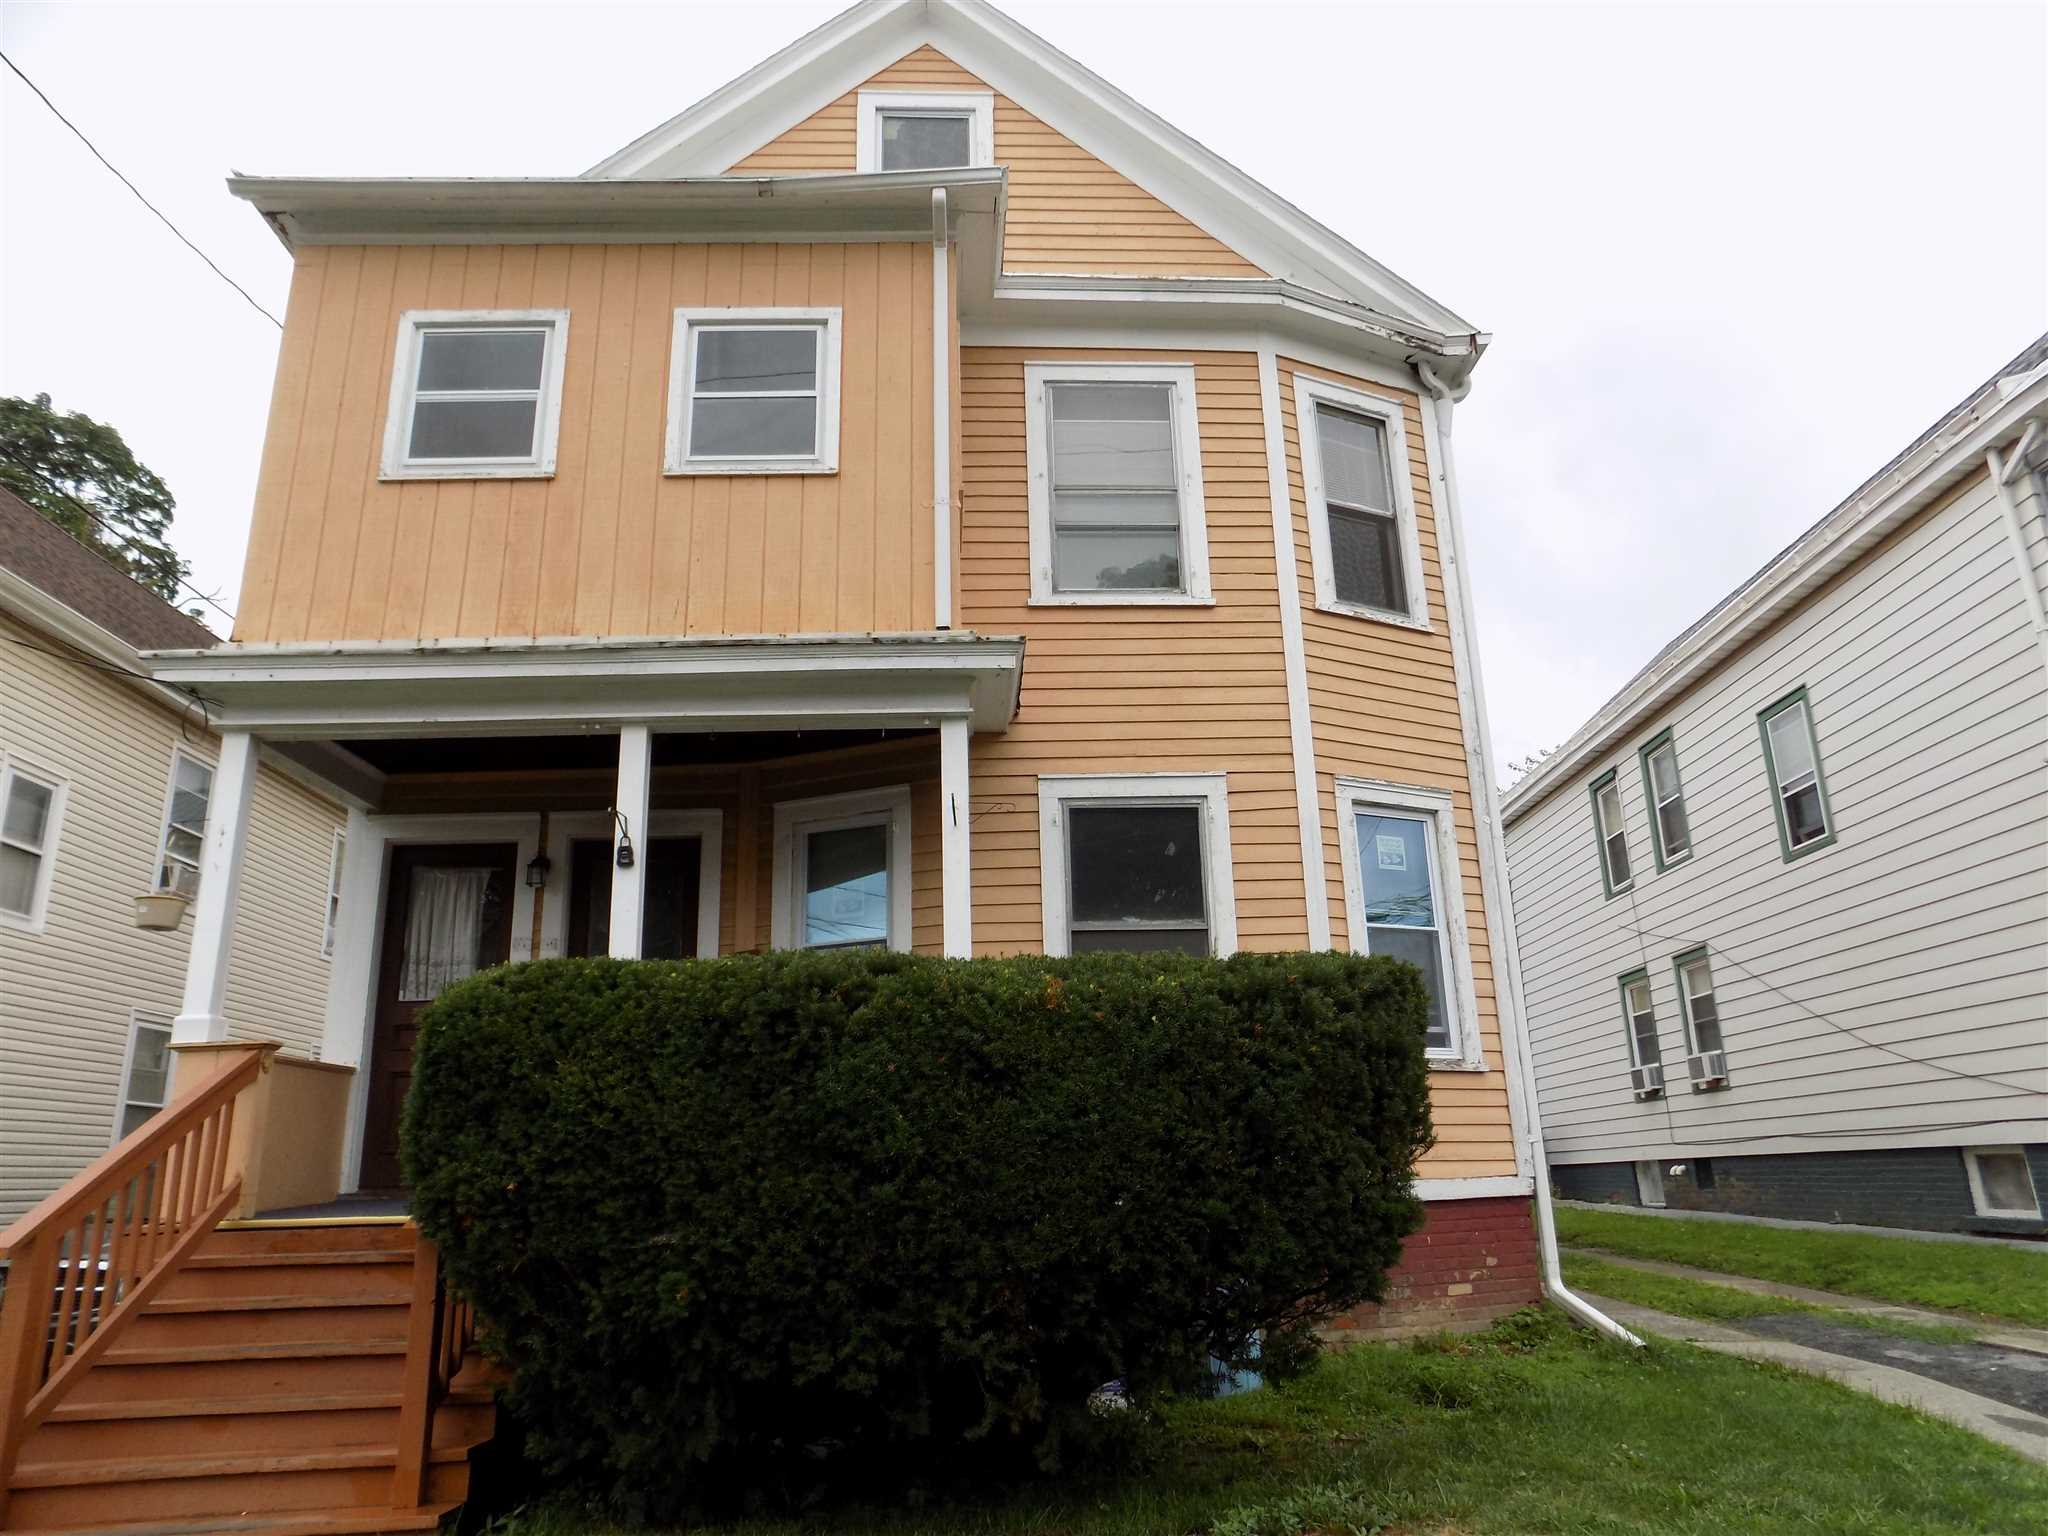 Single Family Home for Sale at 10 MAY Street 10 MAY Street Poughkeepsie, New York 12603 United States